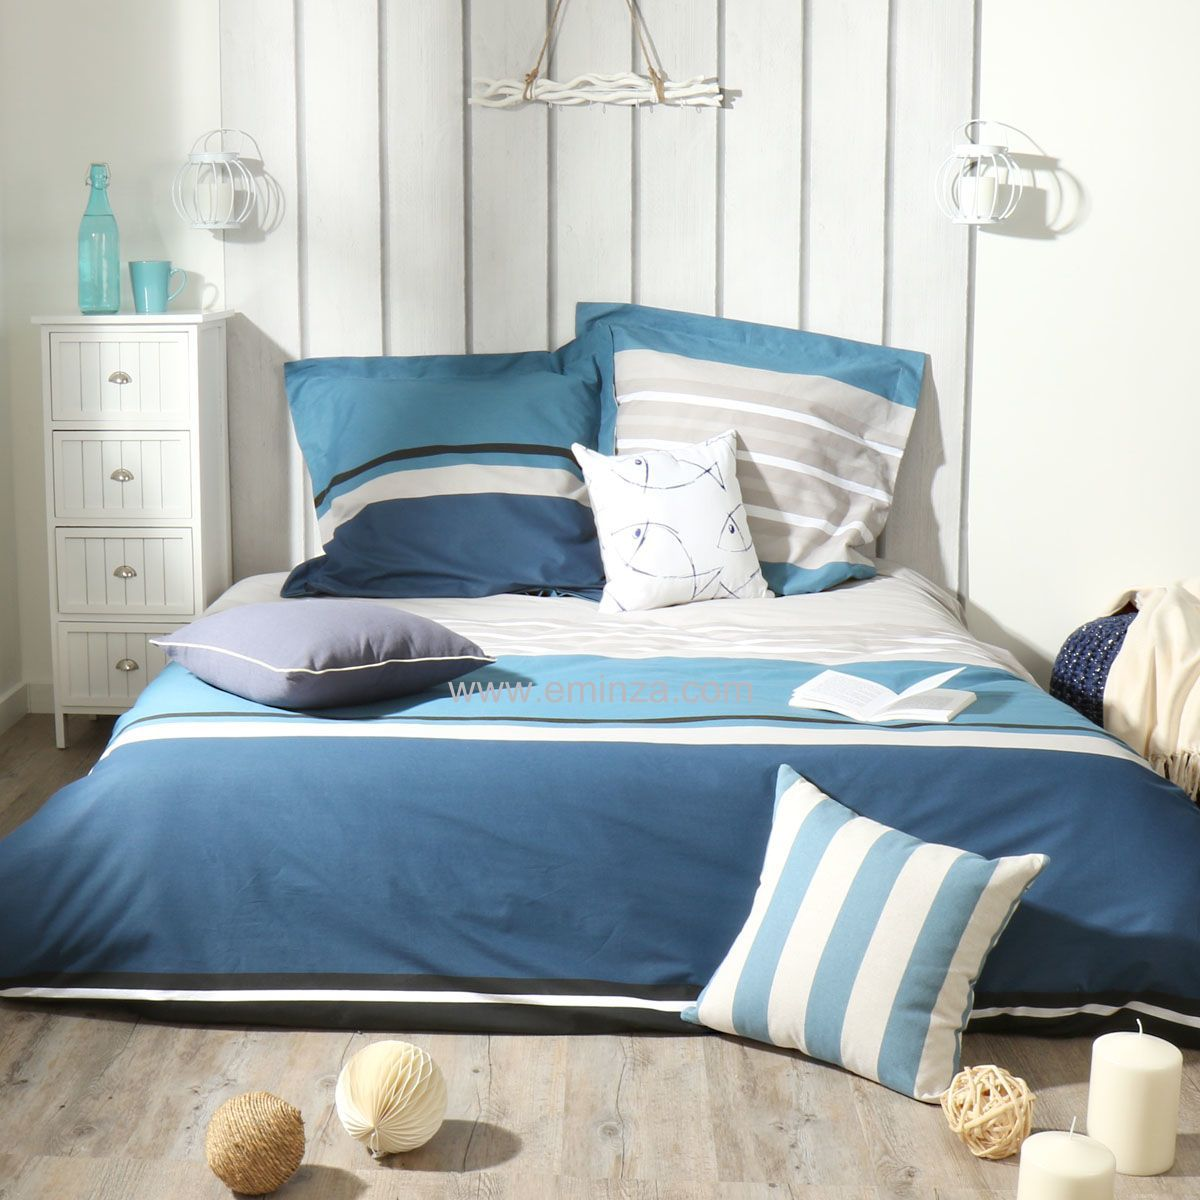 housse de couette et deux taies 200 cm deauville bleu. Black Bedroom Furniture Sets. Home Design Ideas